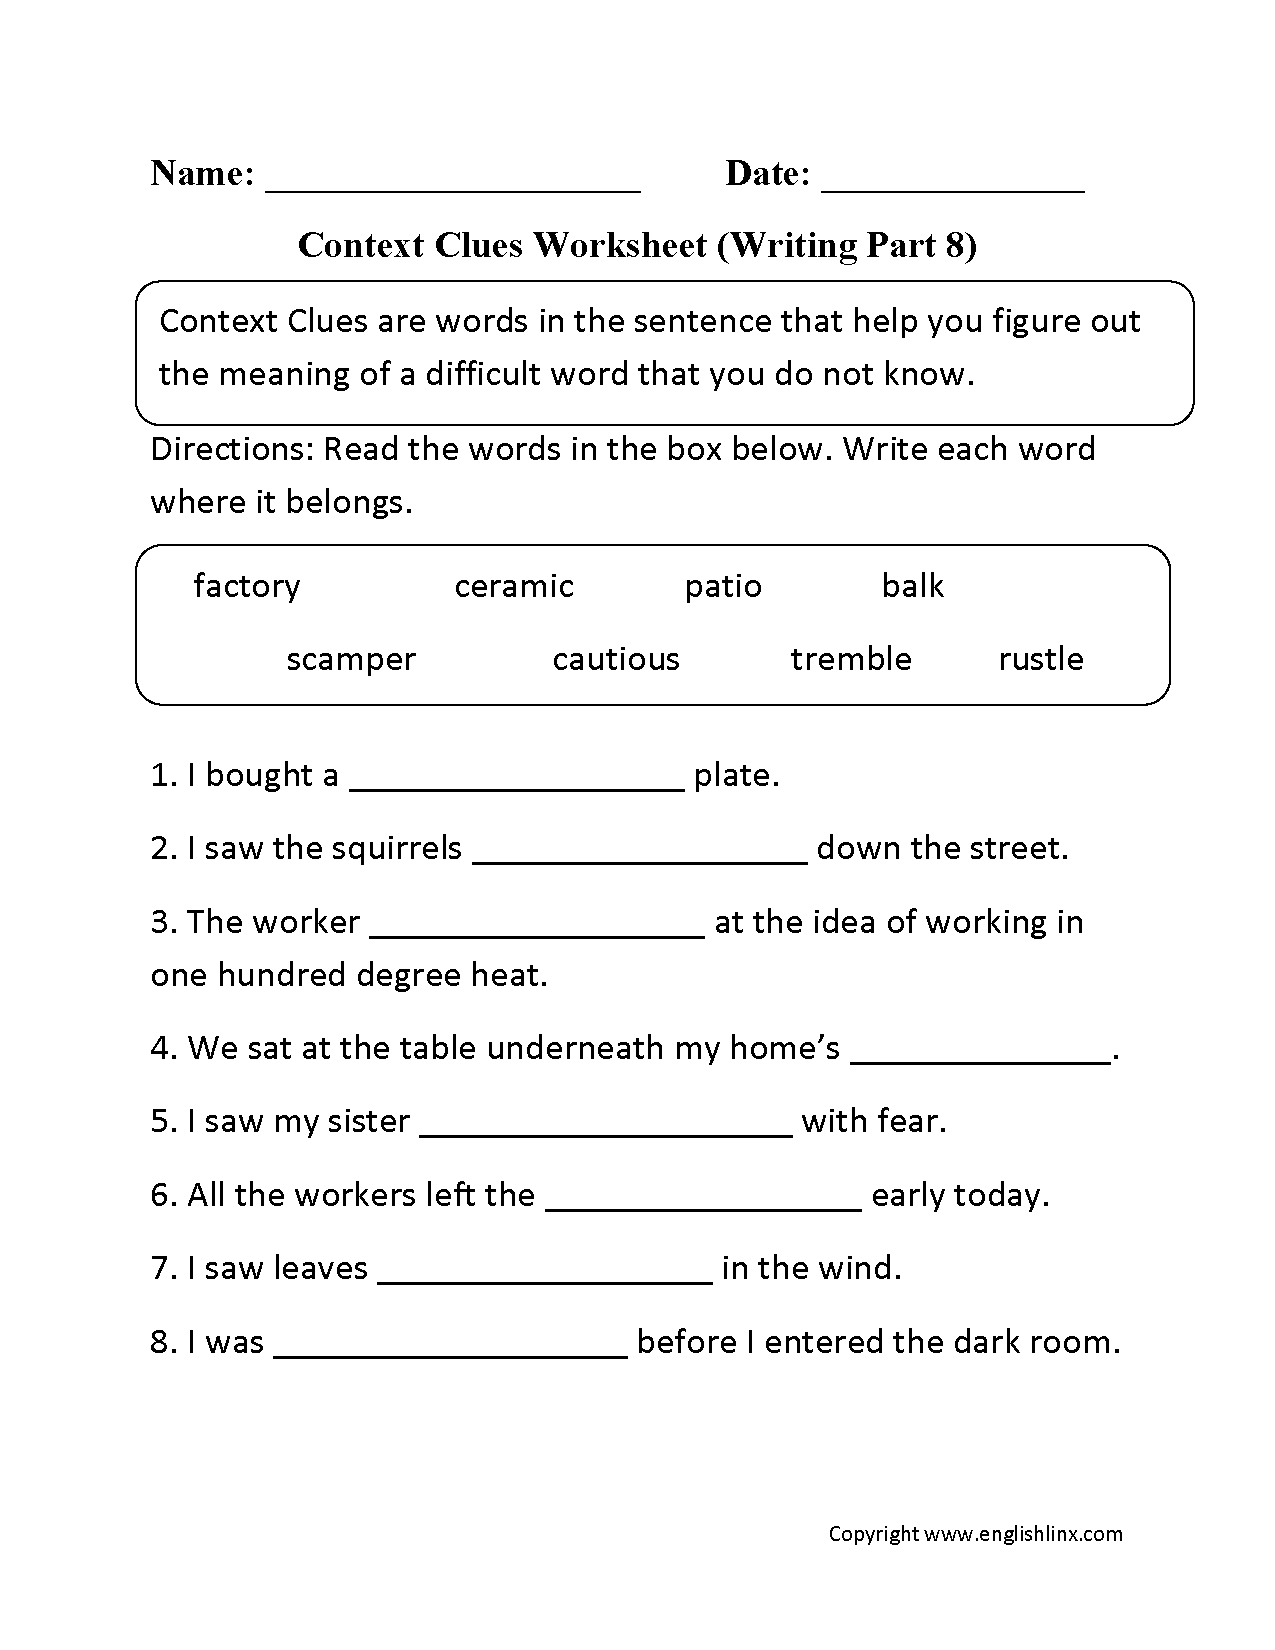 Uncategorized Context Clues Worksheets 3rd Grade context clues worksheet writing part 8 intermediate education intermediate